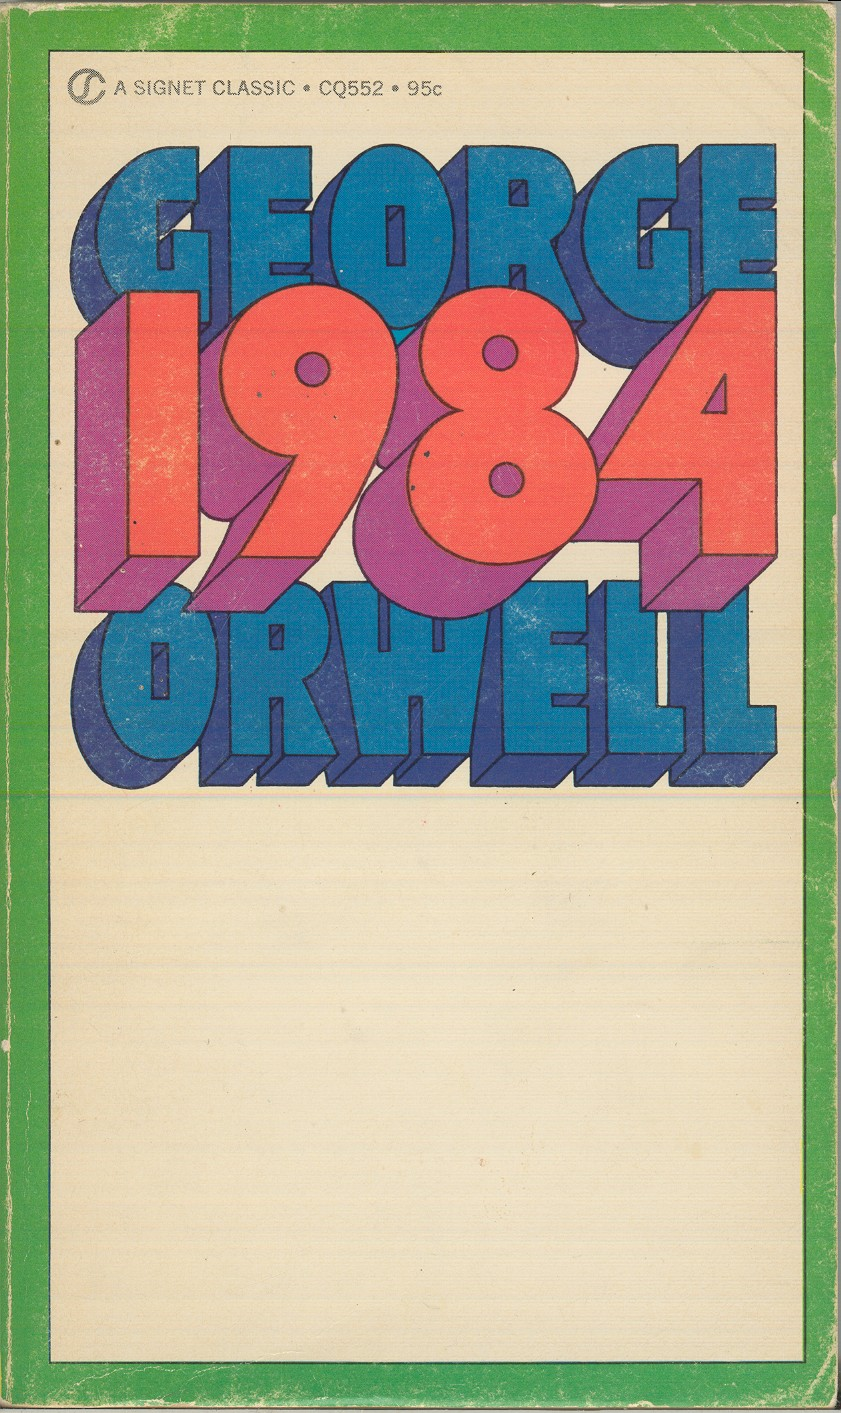 on the use of orwell s 1984 in internet policy narratives